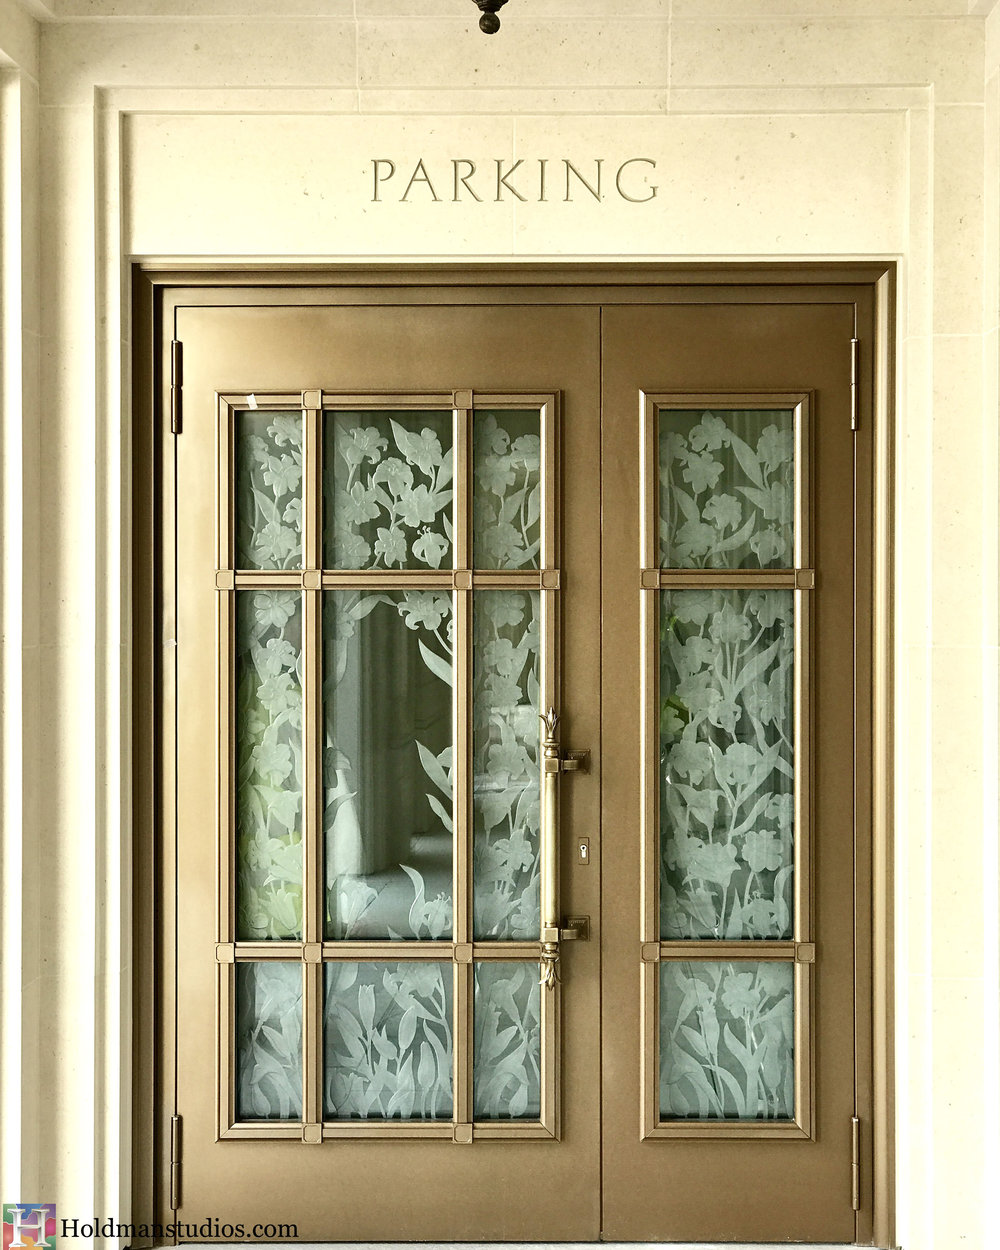 Holdman-Studios-Etched-Glass-Paris-LDS-Temple-Lily-Flowers-Exterior-Parking-Door-Windows.jpg